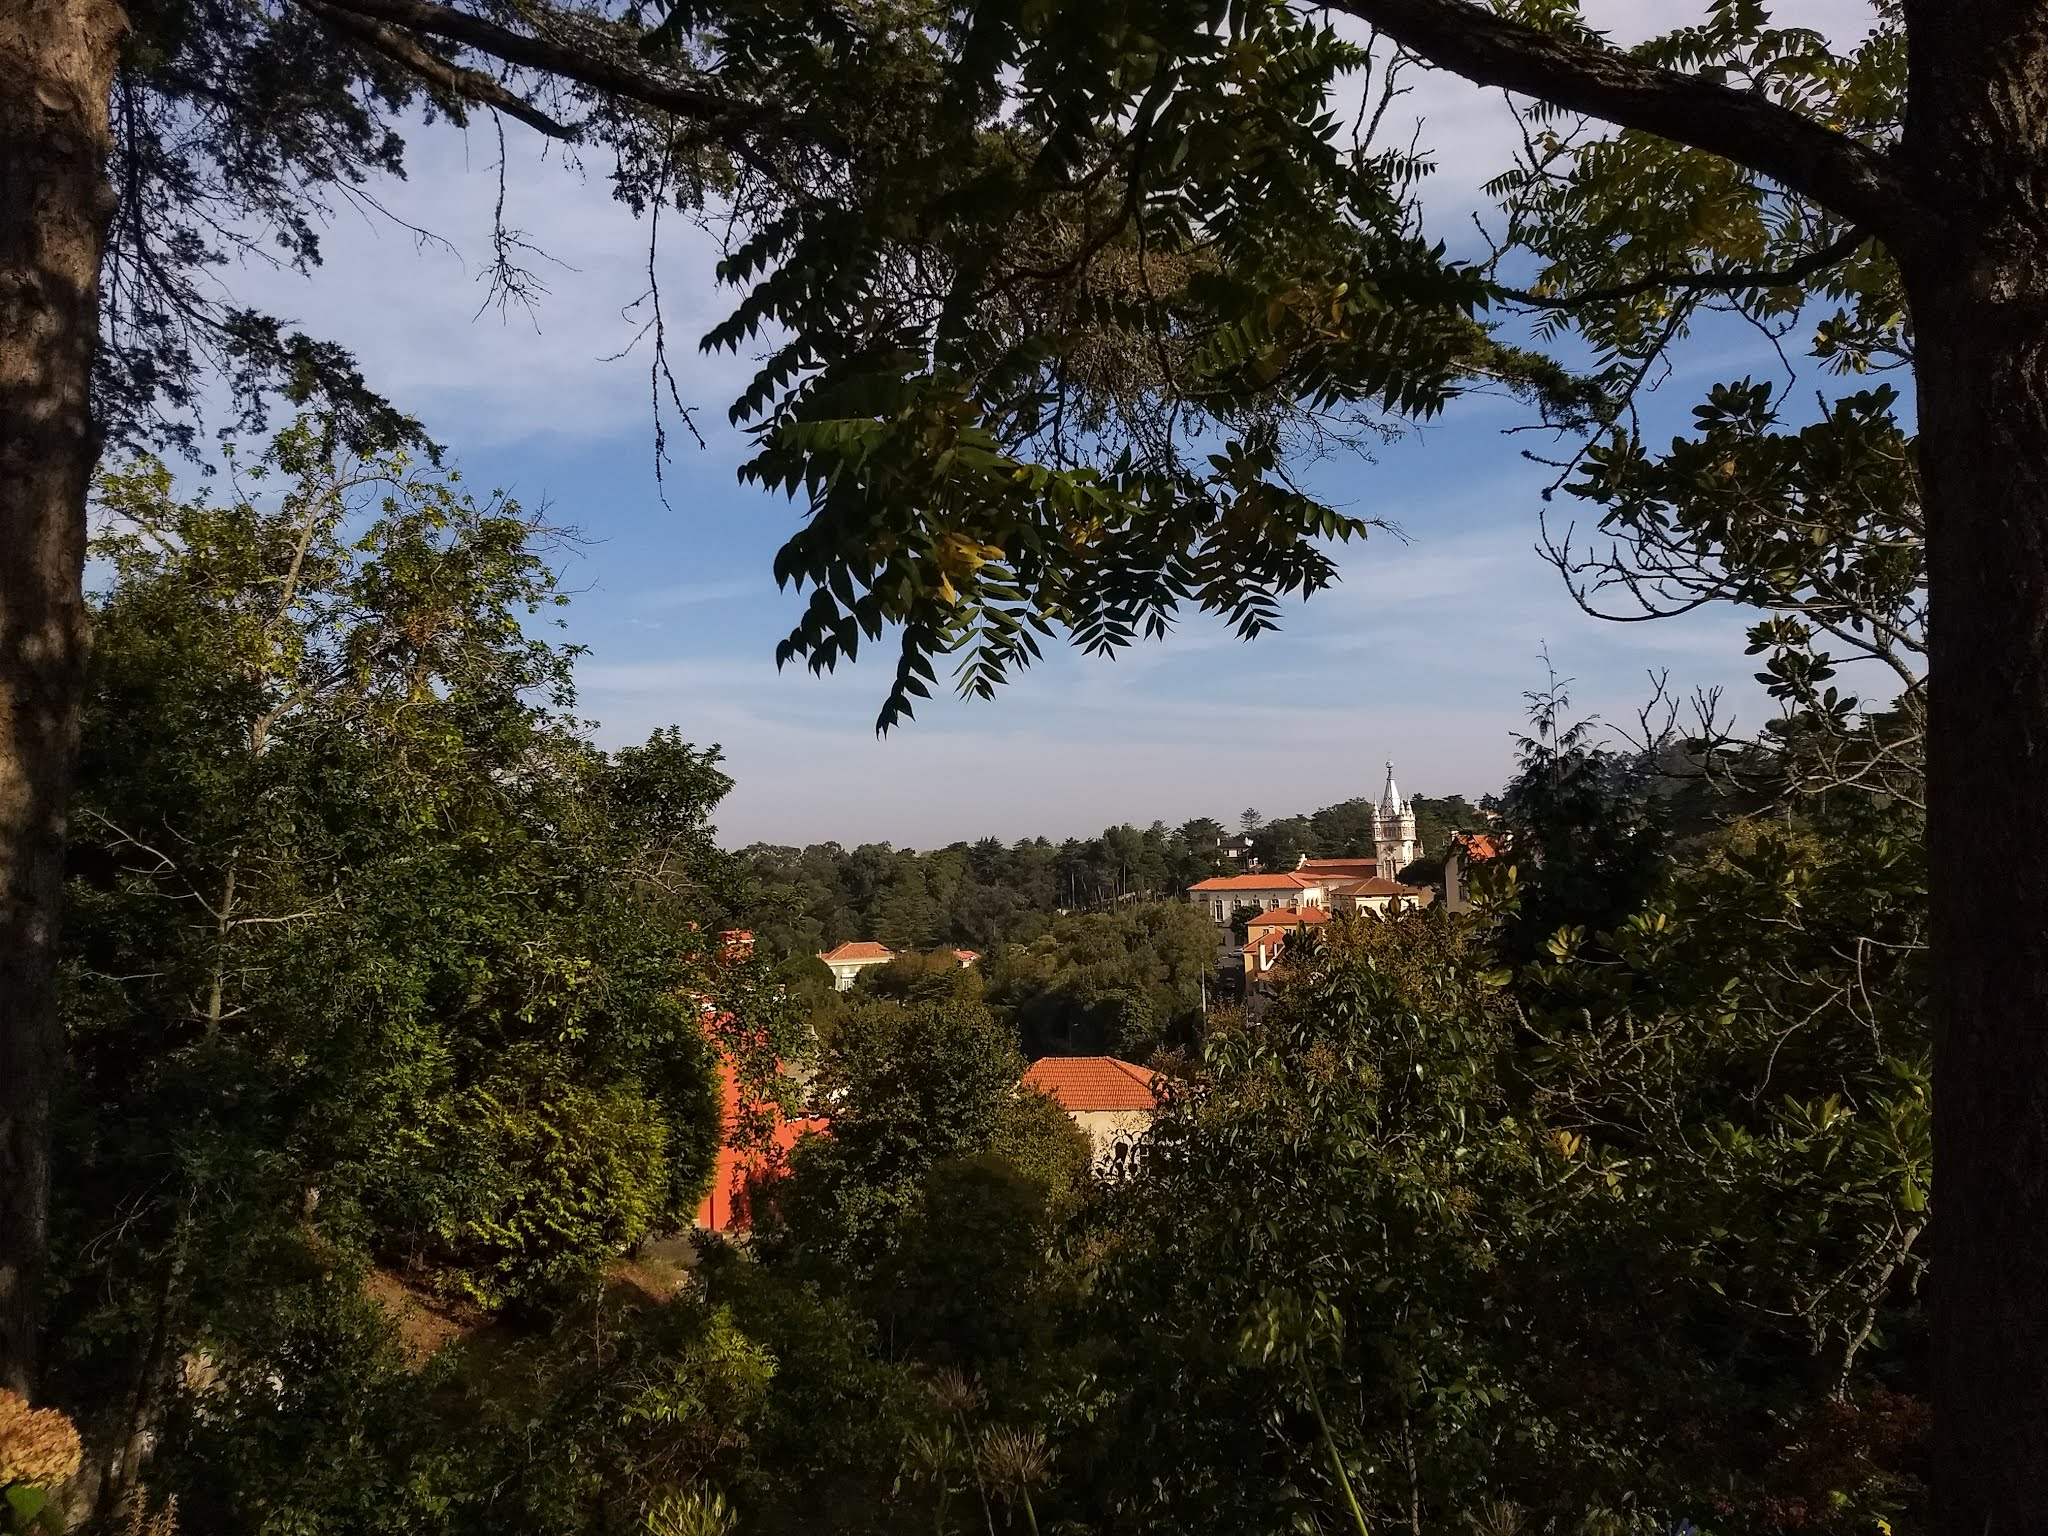 View through trees in Sintra, Portugal.